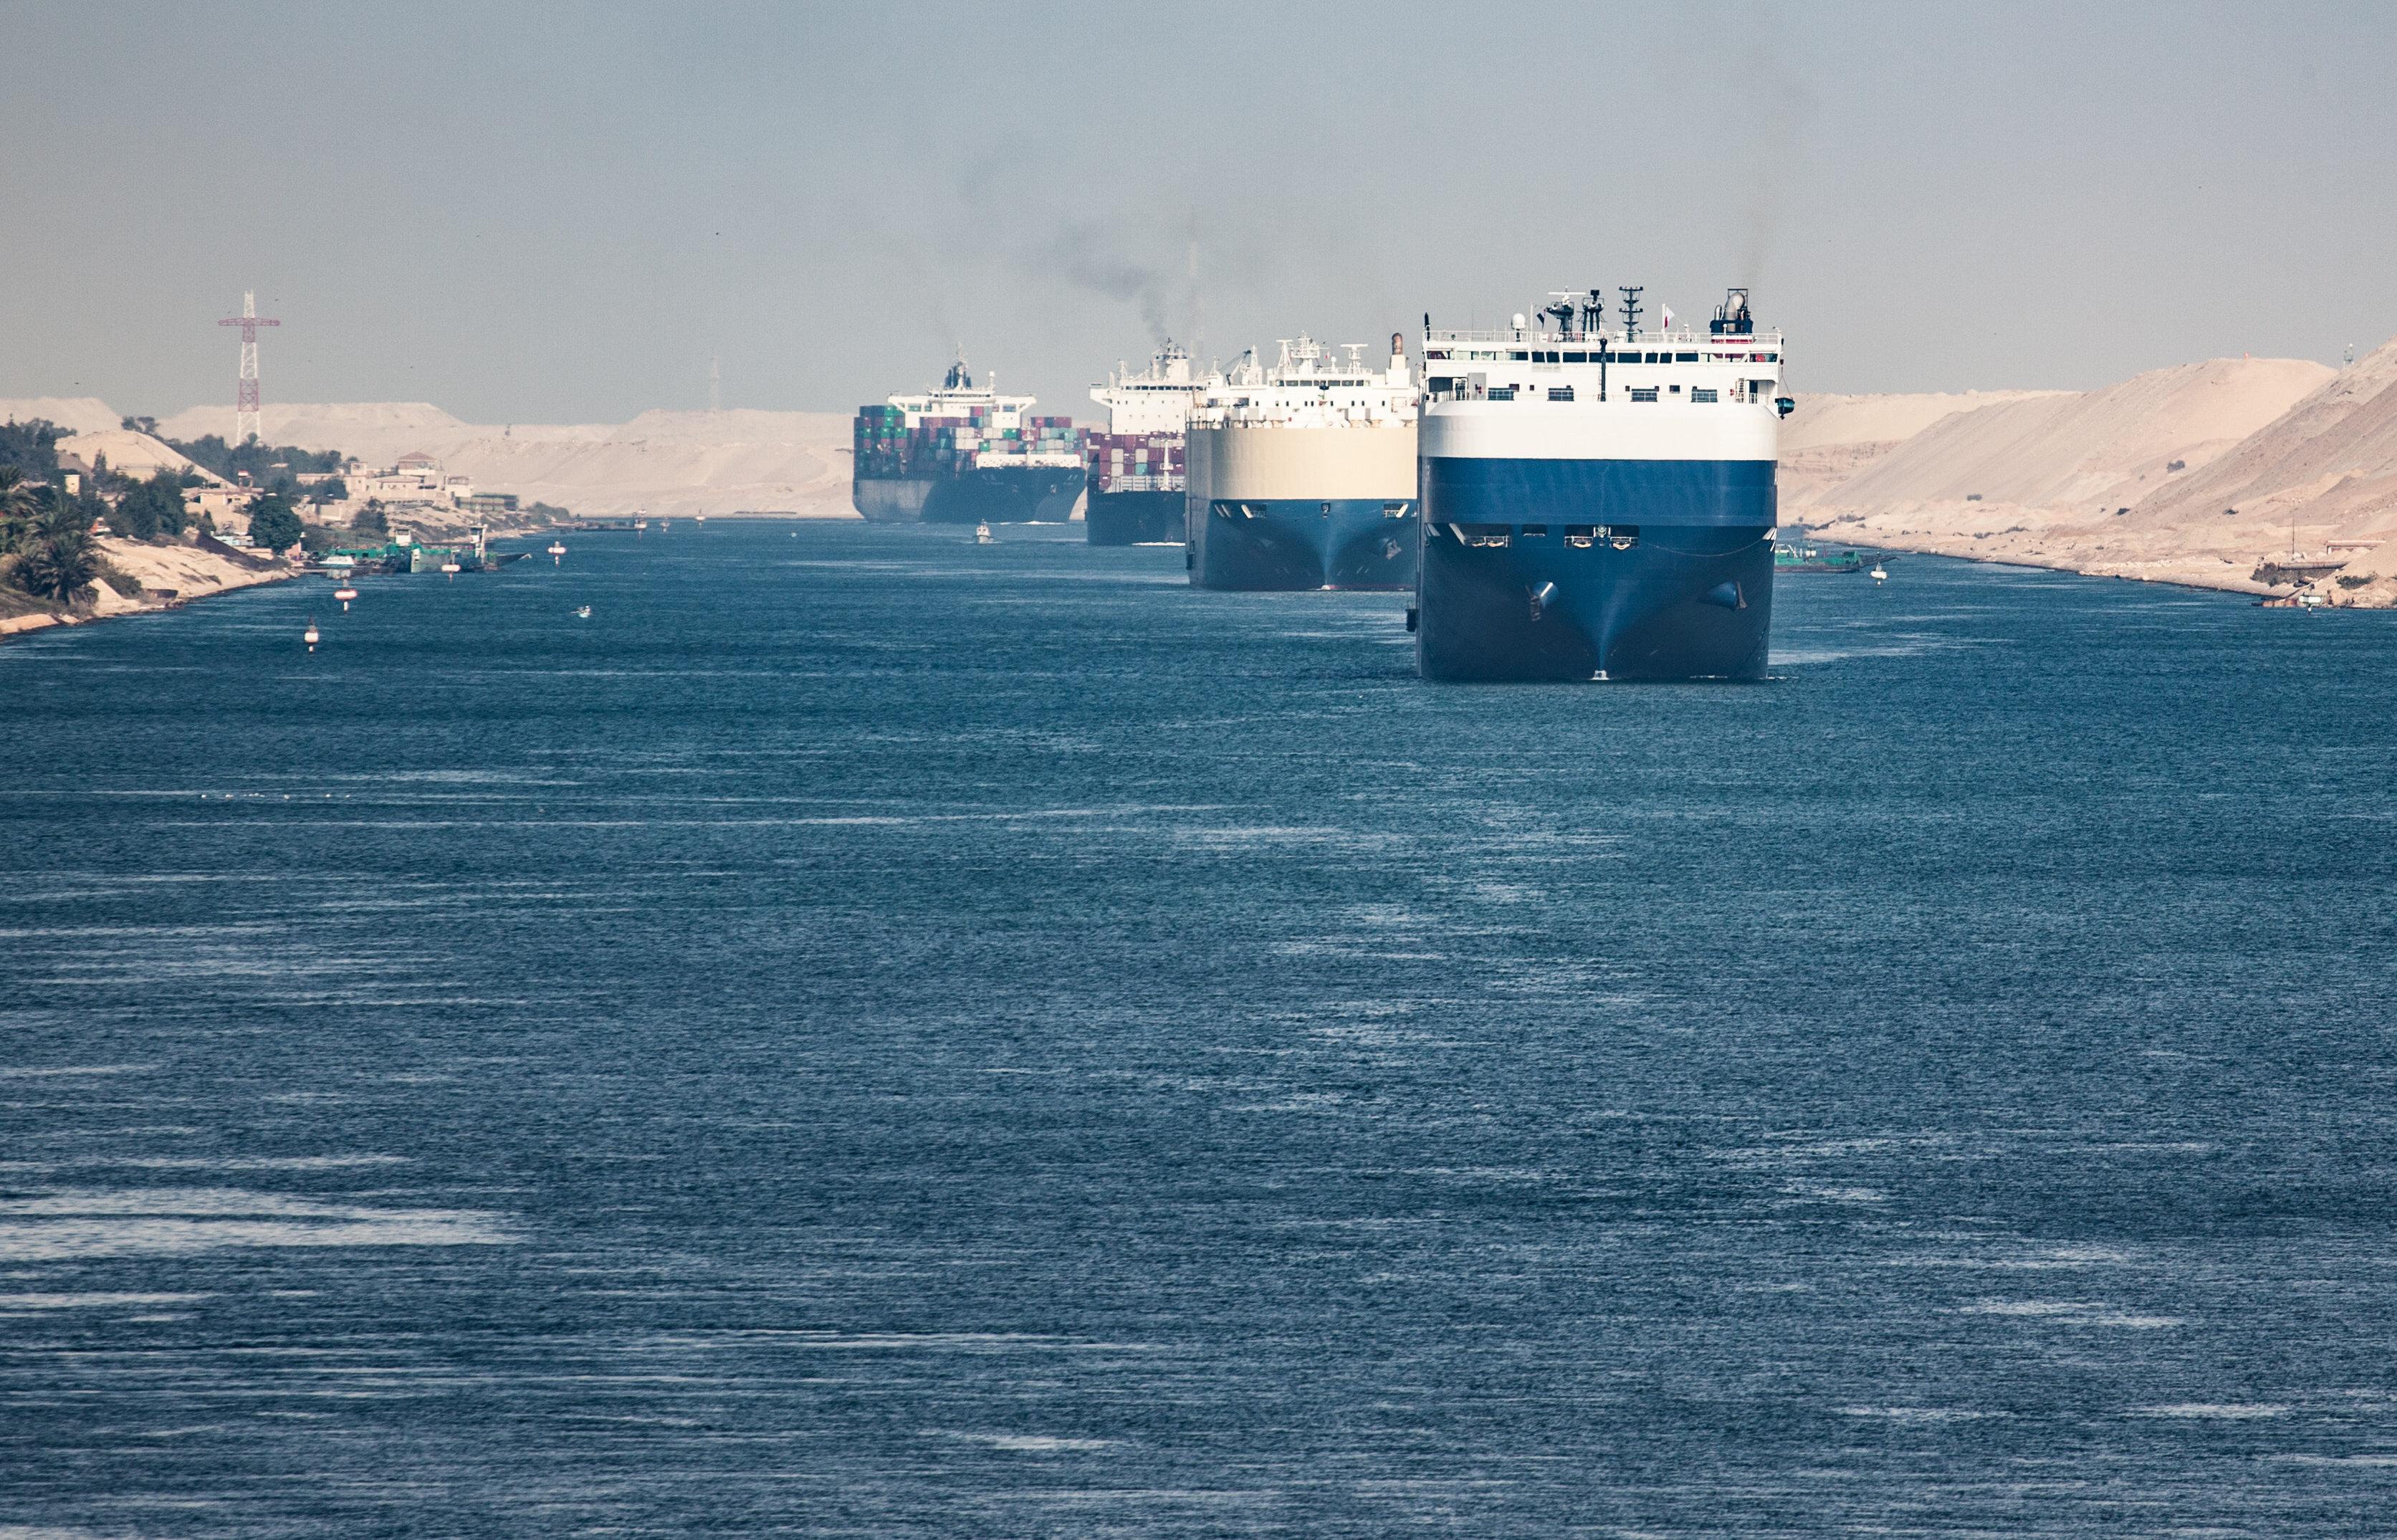 There has been further disruption to freight in the Suez Canal, where a container ship ran aground in March